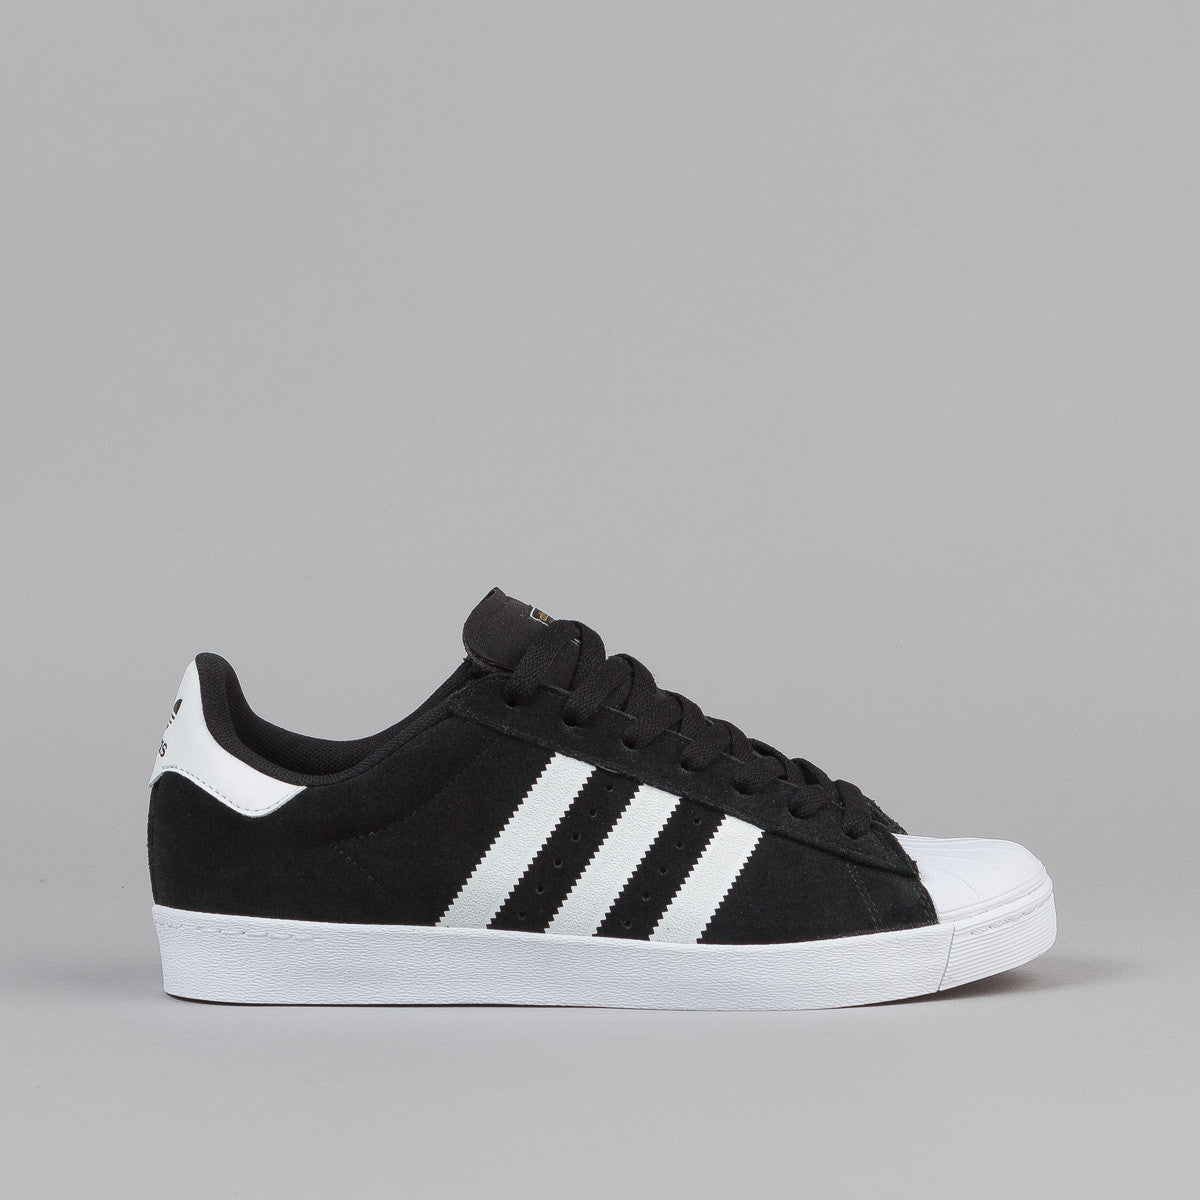 178ad3847386 Cheap Adidas Superstar Vulc ADV Black Suede   White Shoes Men s Shoes